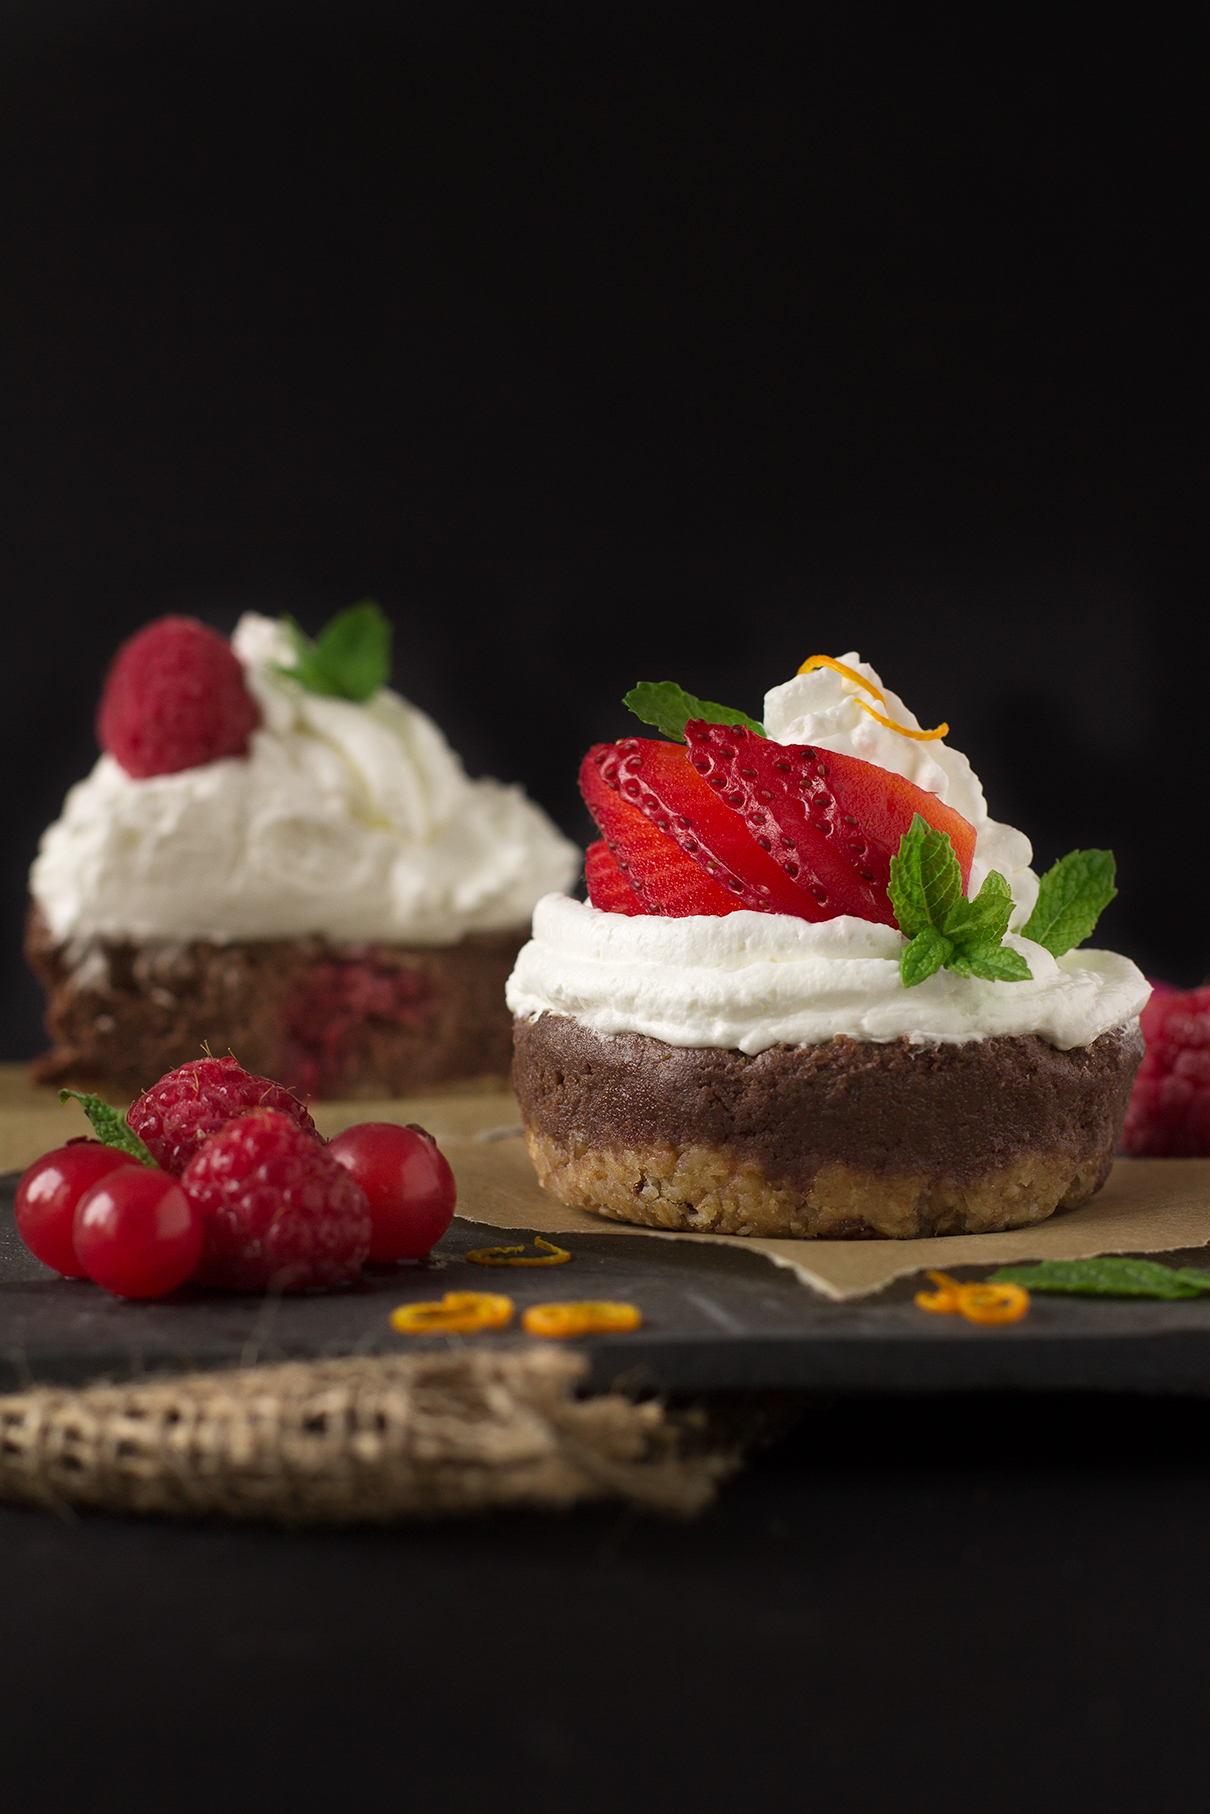 NOBAKE BANANA CHOCOLATE CHEESECAKE CUPCAKES #vegan #glutenfree with coconut whipped cream and fresh berries | VEGAN Cheesecake Cupcakes CIOCCOLATO e BANANA senza cottura con frutti di bosco e panna al latte di cocco #vegan #glutenfree #nobake